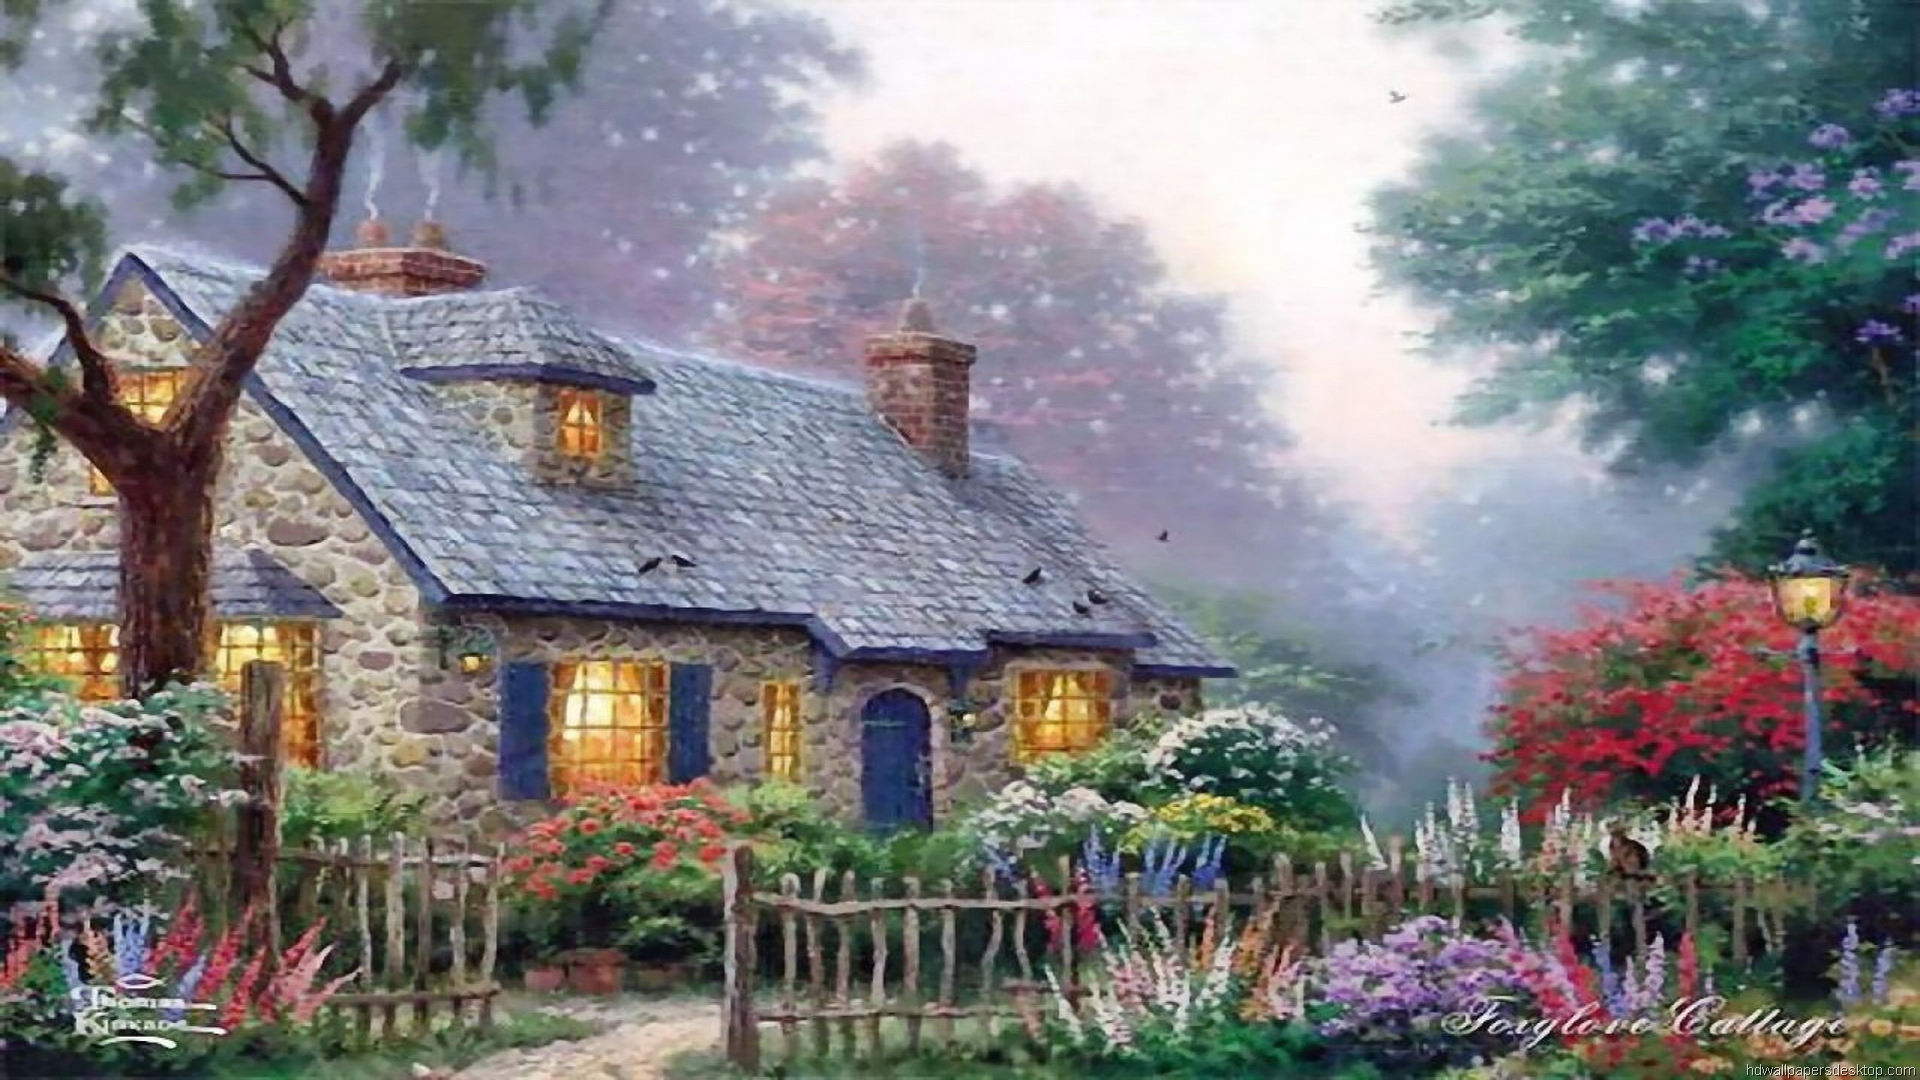 1920x1080px Thomas Kinkade Disney Wallpaper 1920x1080 Wallpapersafari